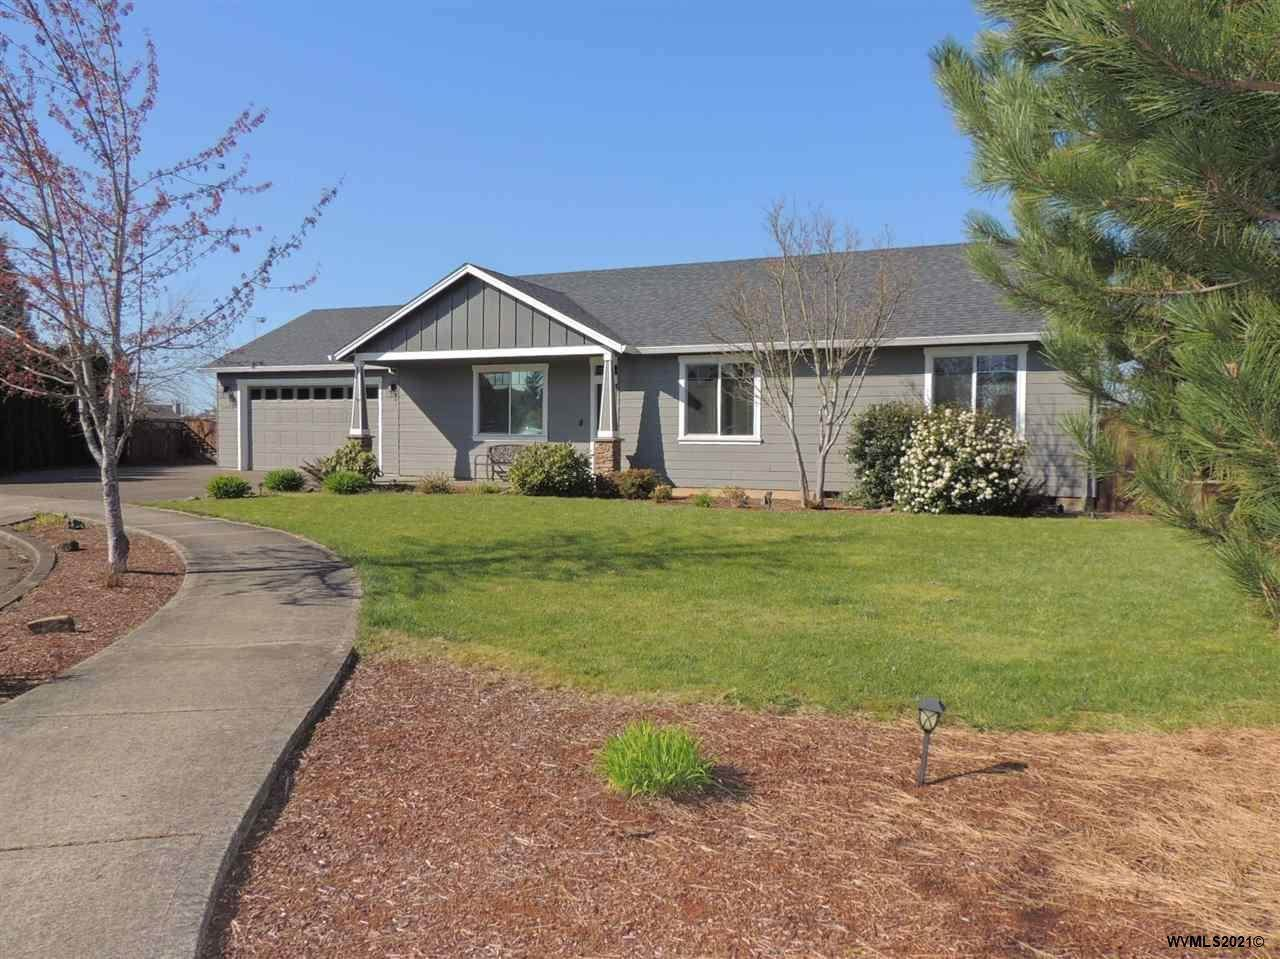 1495 Cooley Ct - Photo 1